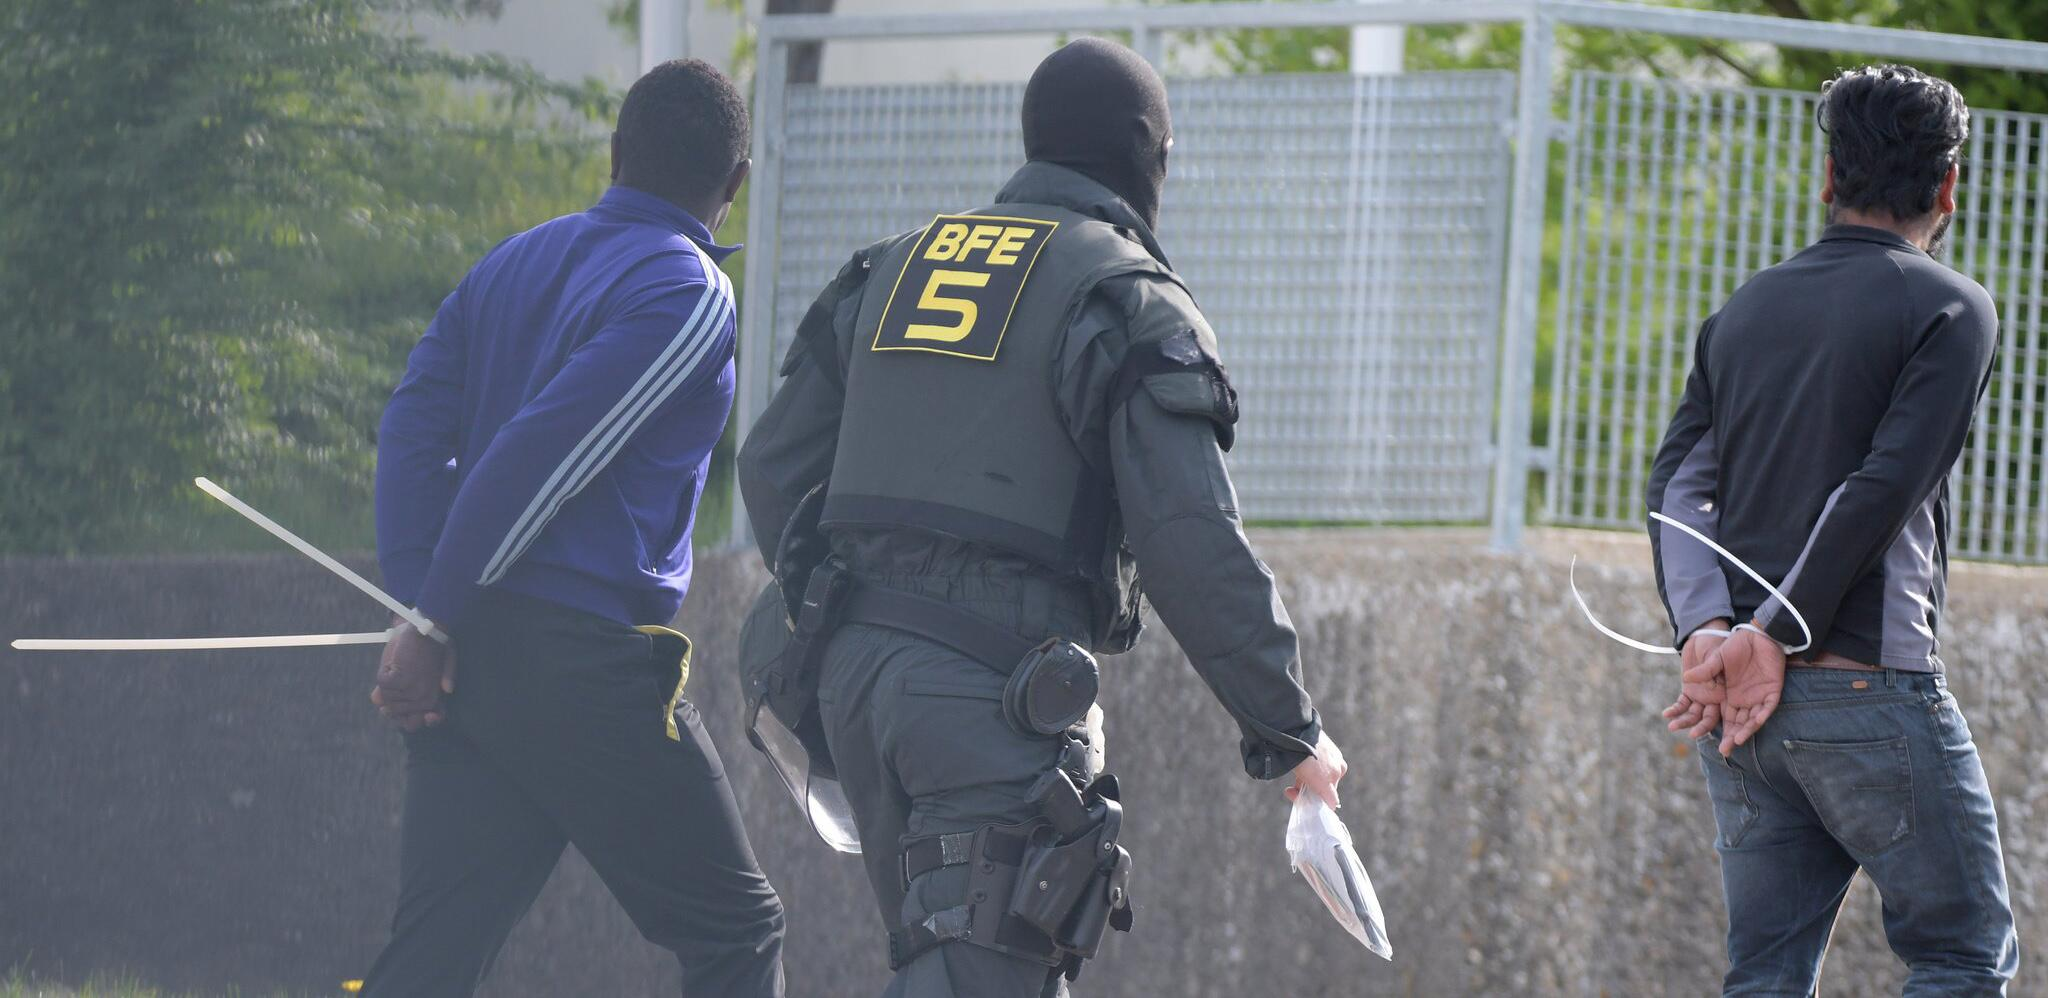 Bild zu Police operation at refugee centre in Germany